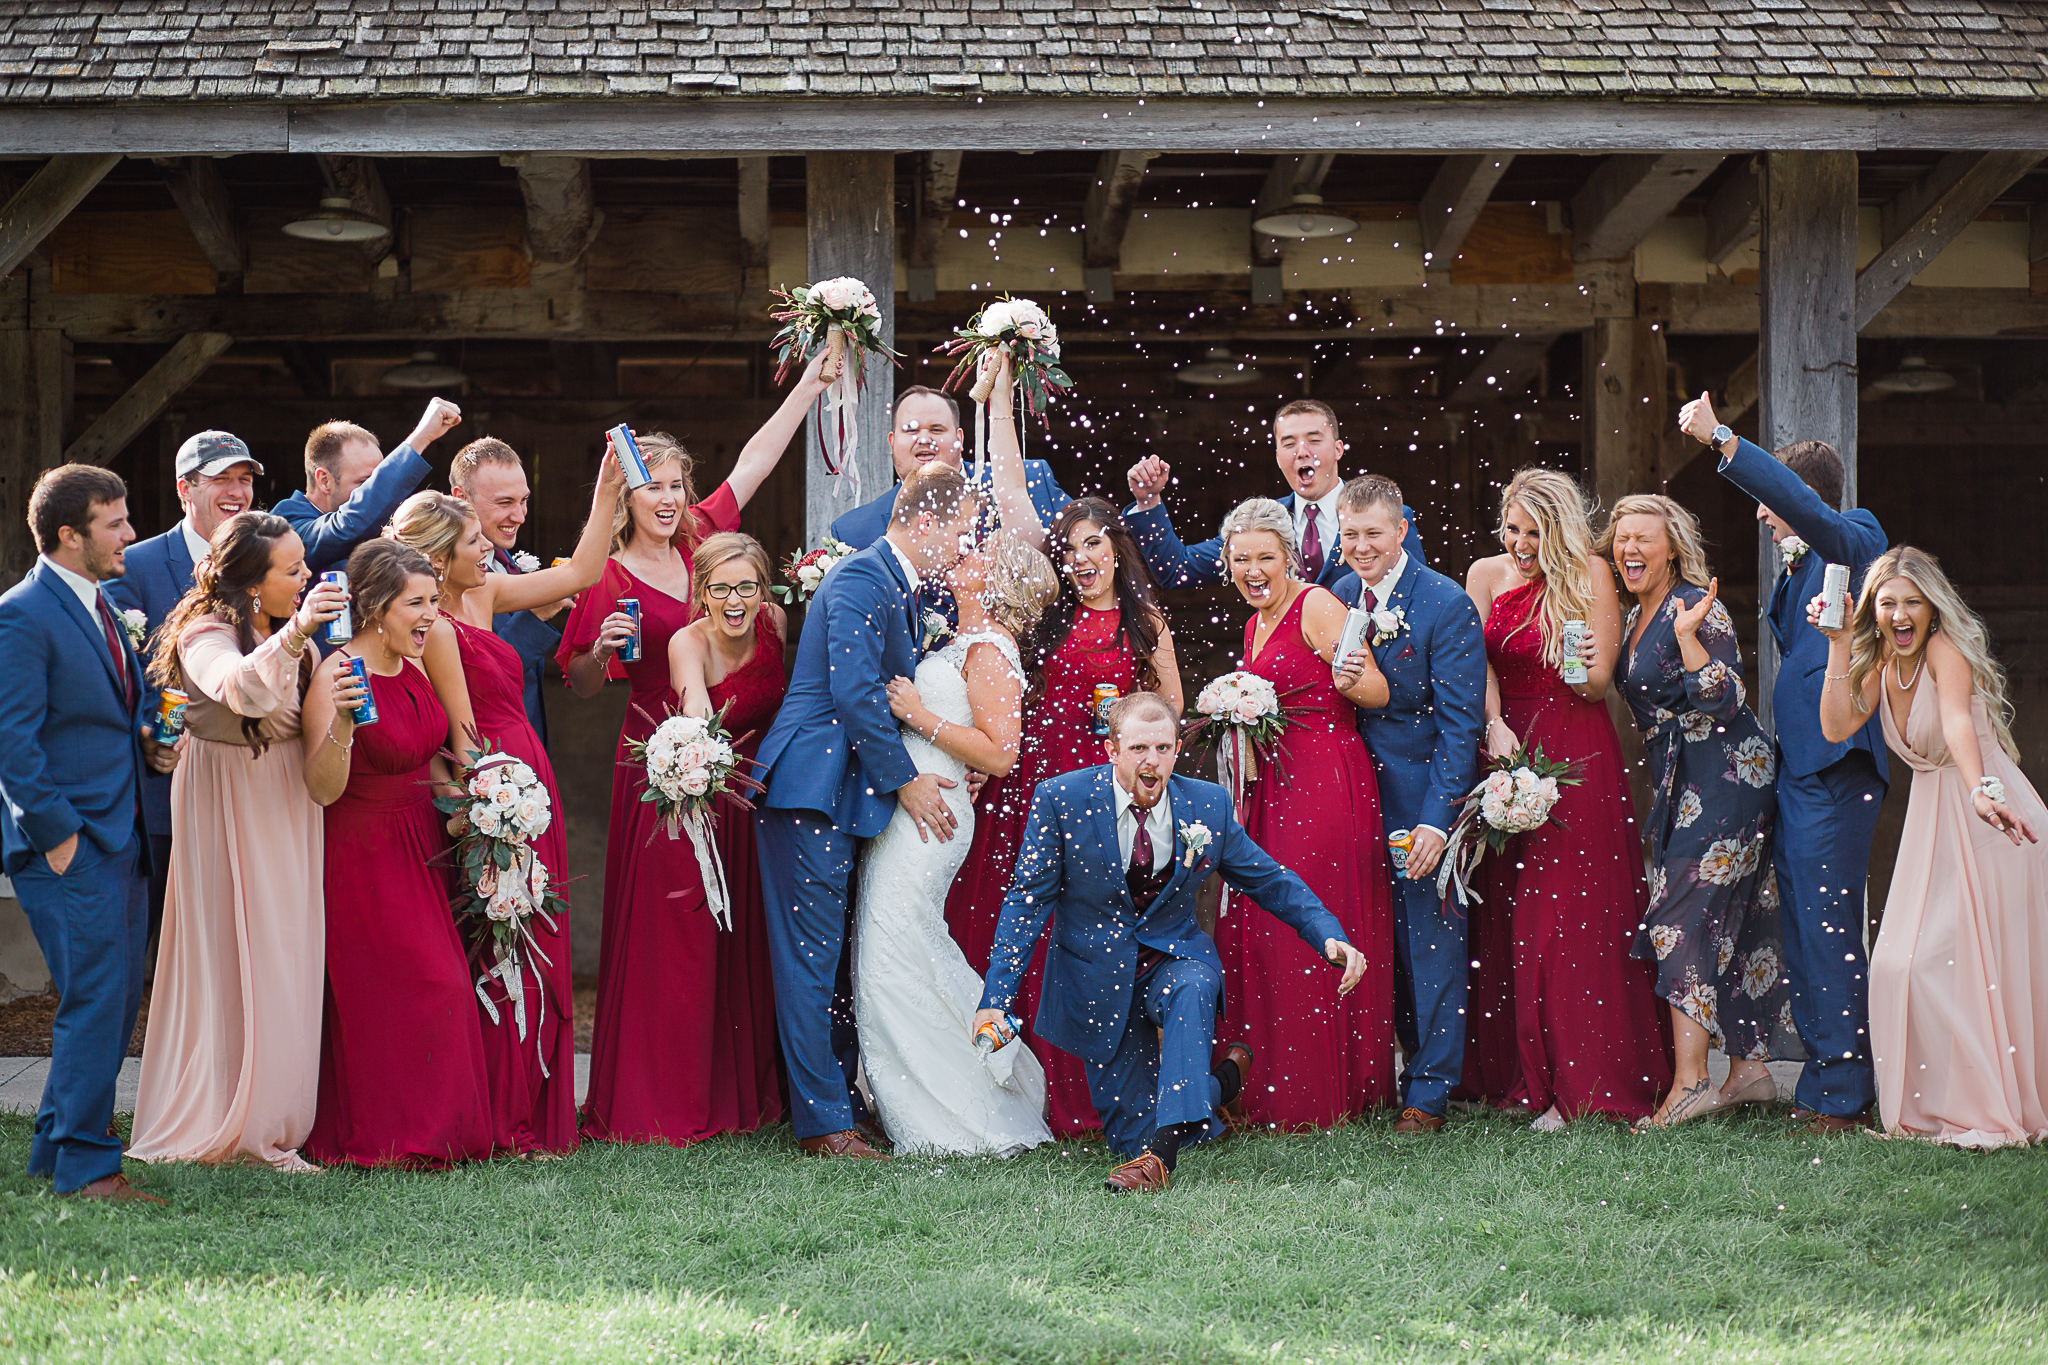 bride and groom kissing with bridal party cheering